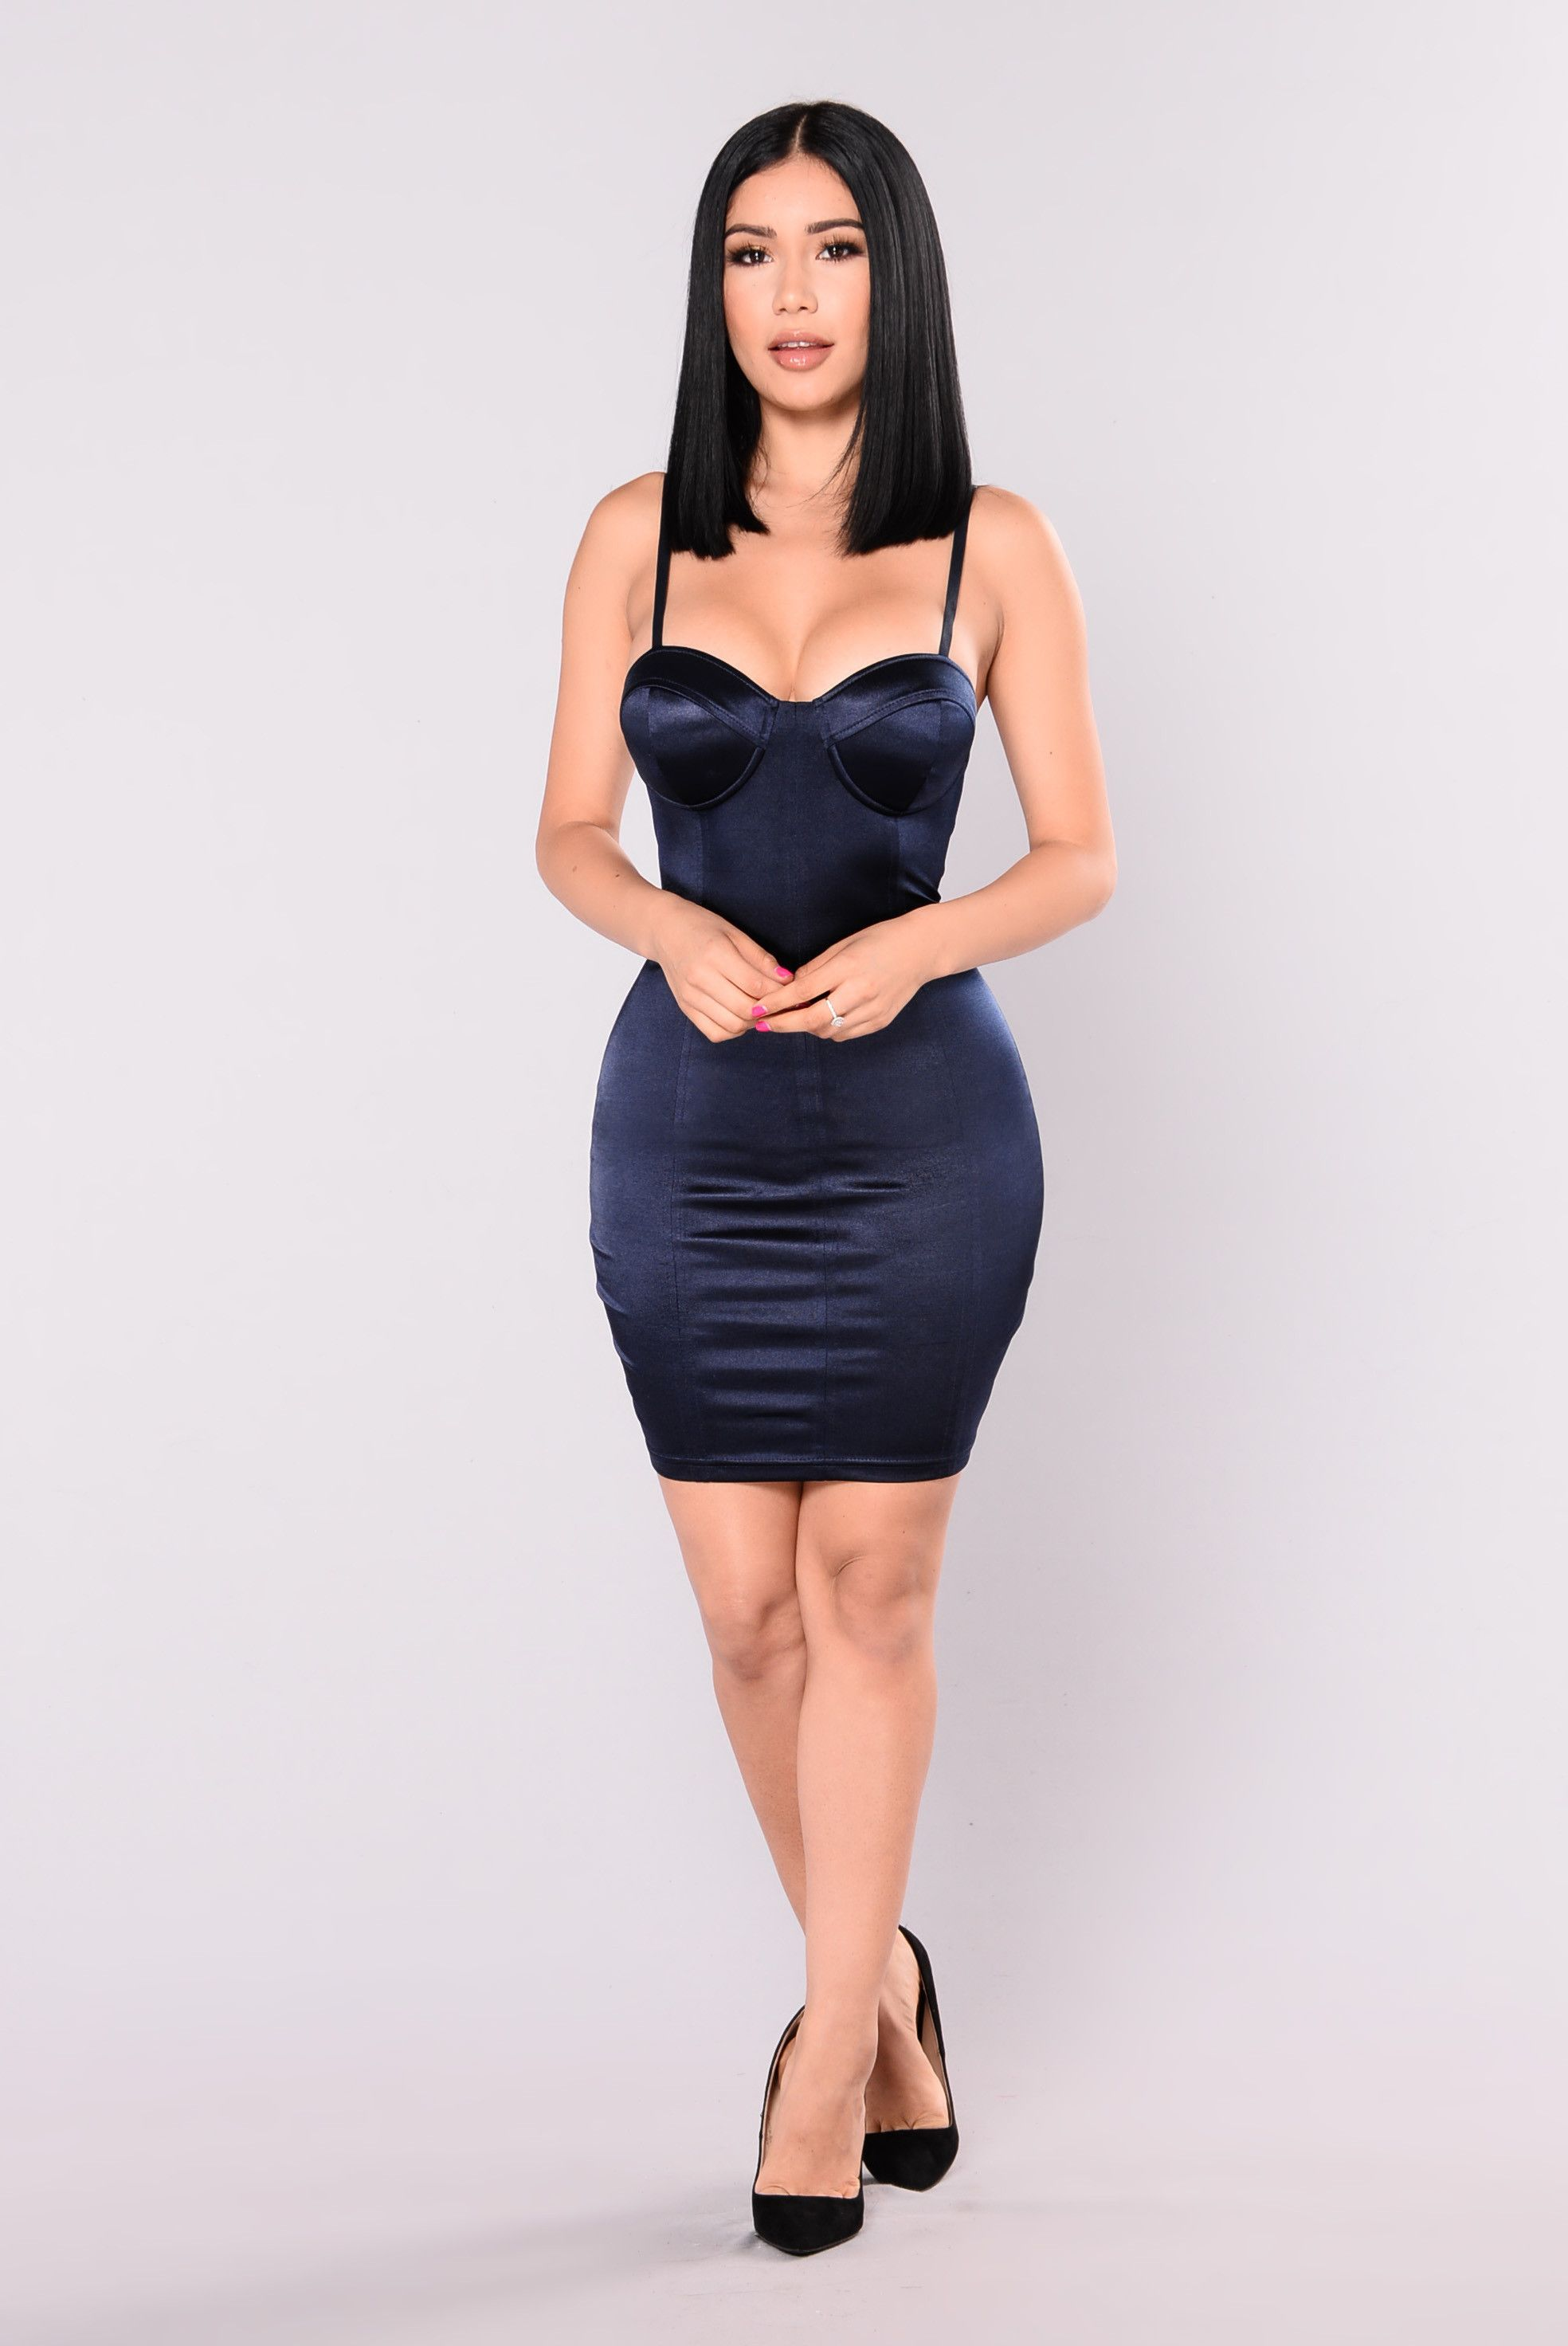 7e2b81b25d618 ... Dresses Georgette Online. Available In Magenta and Navy Stretch Satin  Mini Dress Padded Cups Adjustable Straps Zipper Back 94% Polyester 6%  Spandex